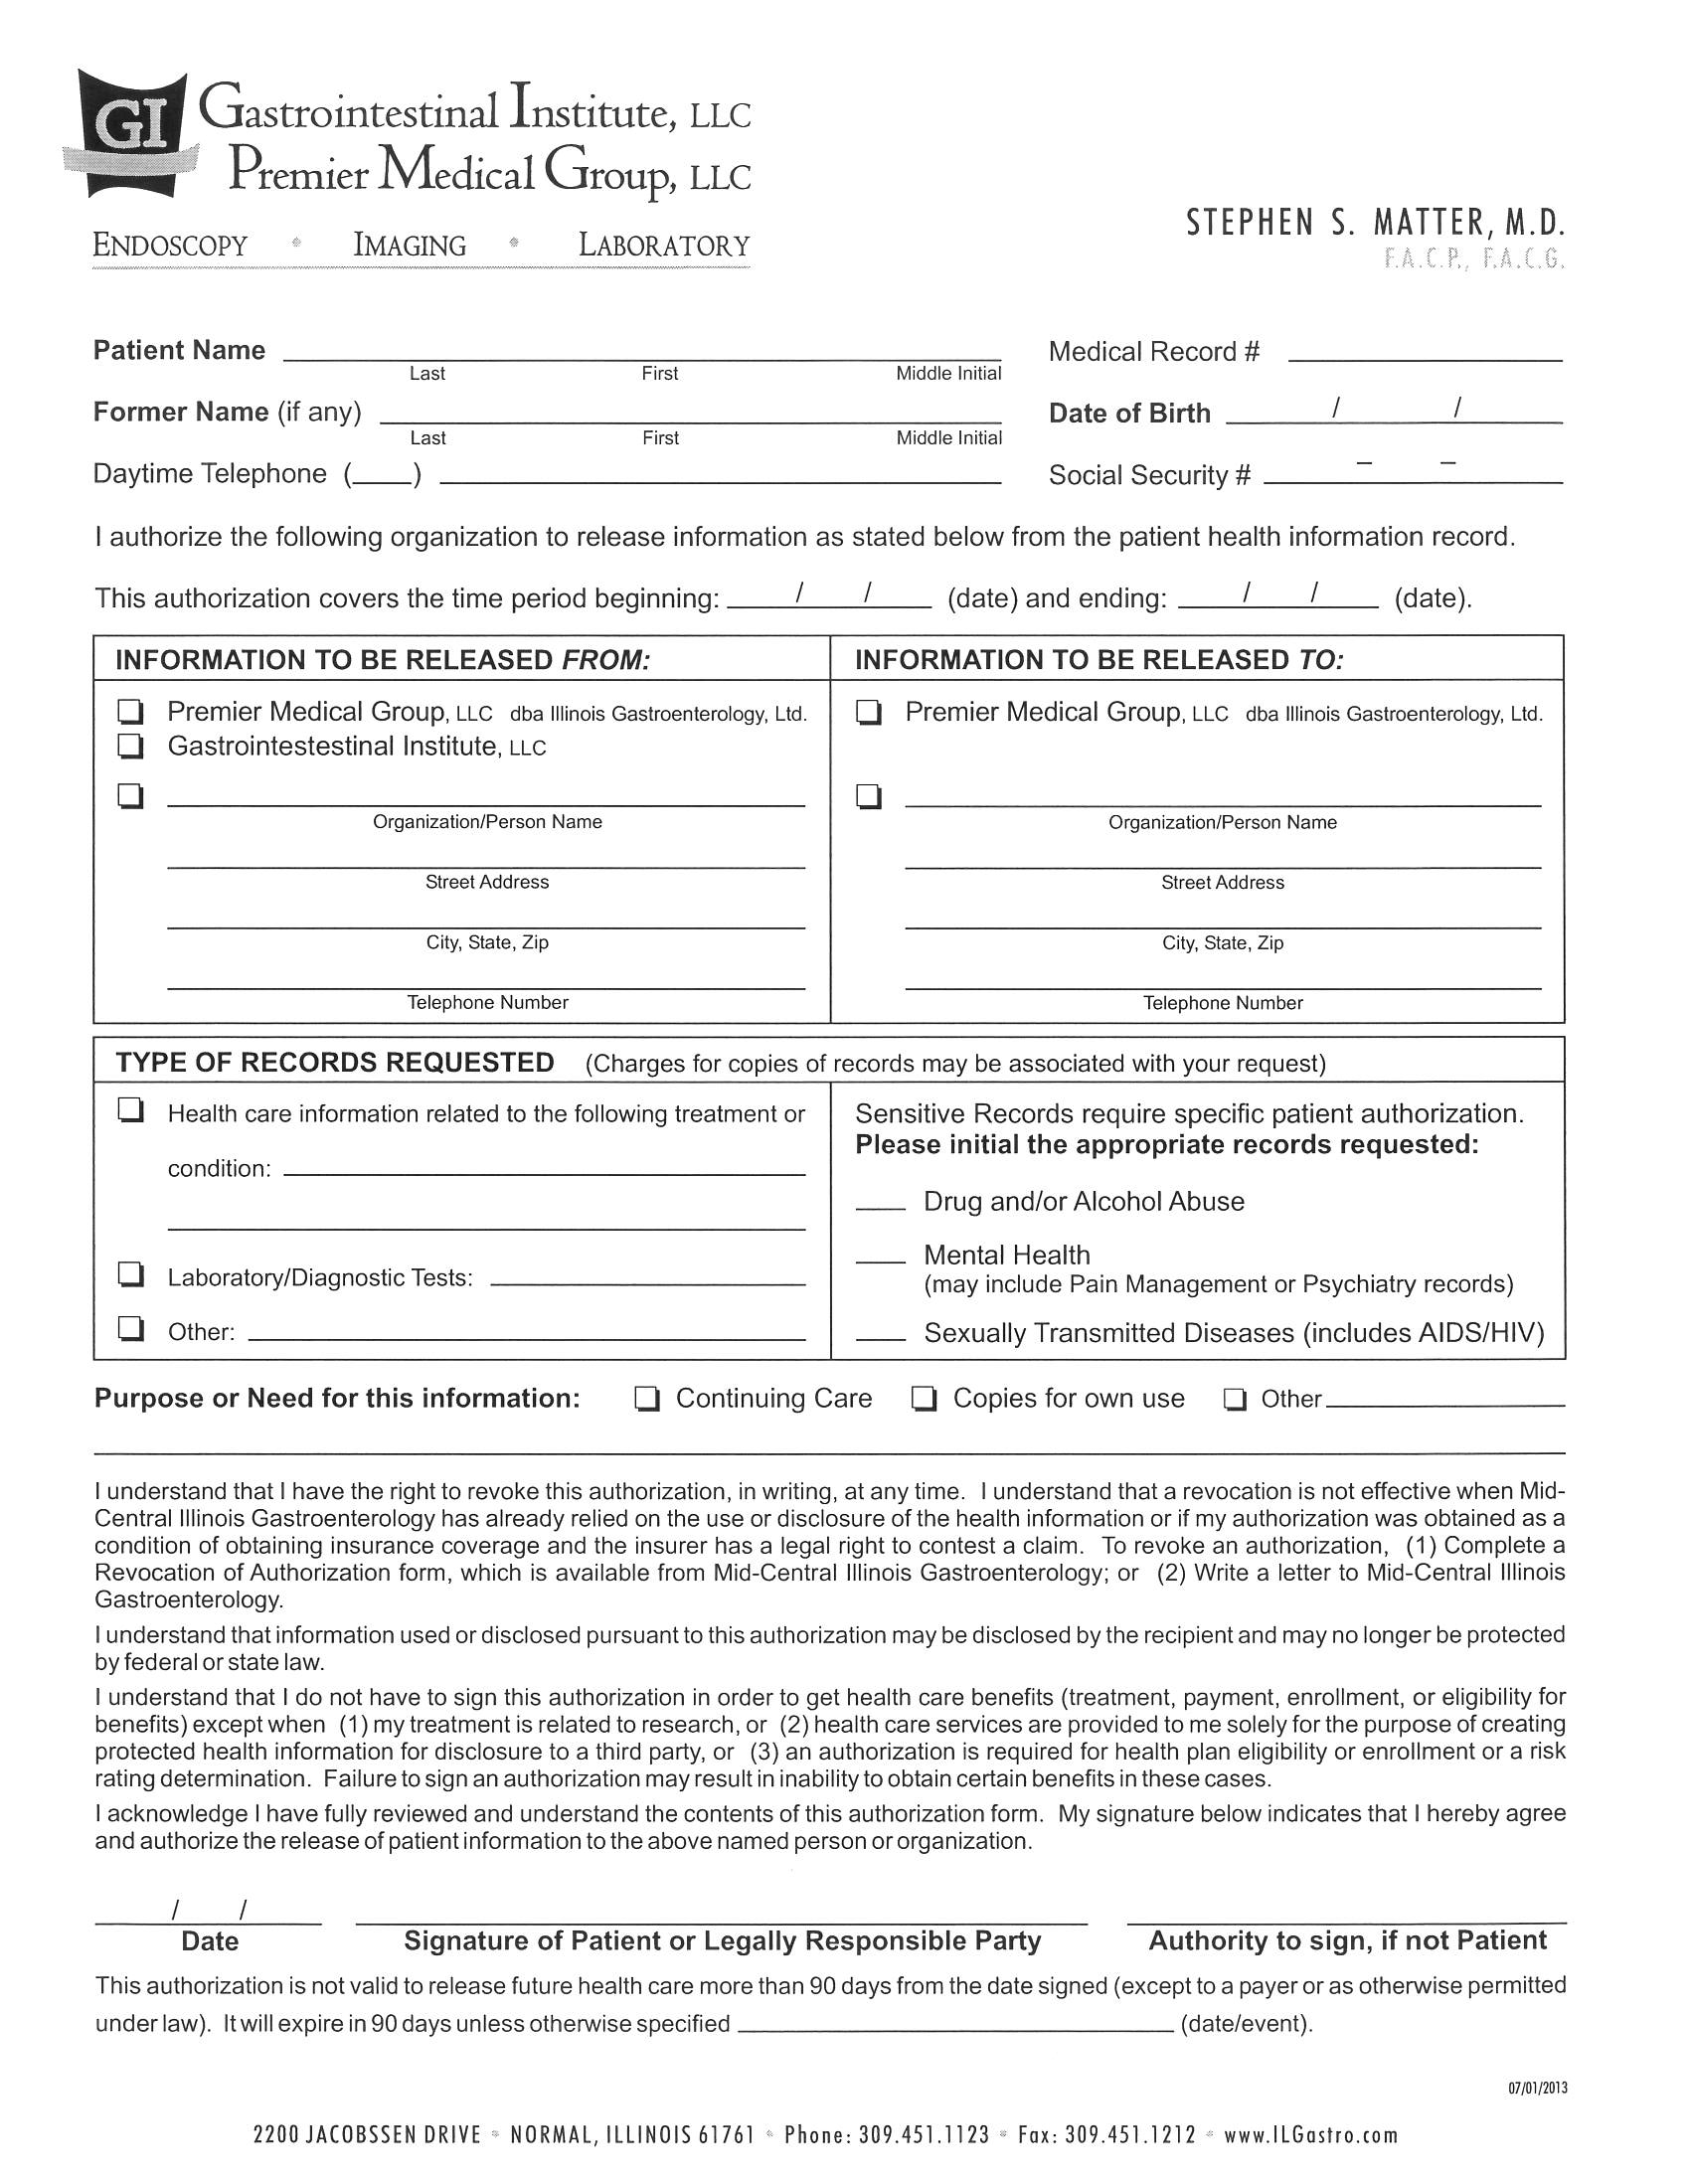 forms links gastrointestinal institute llc